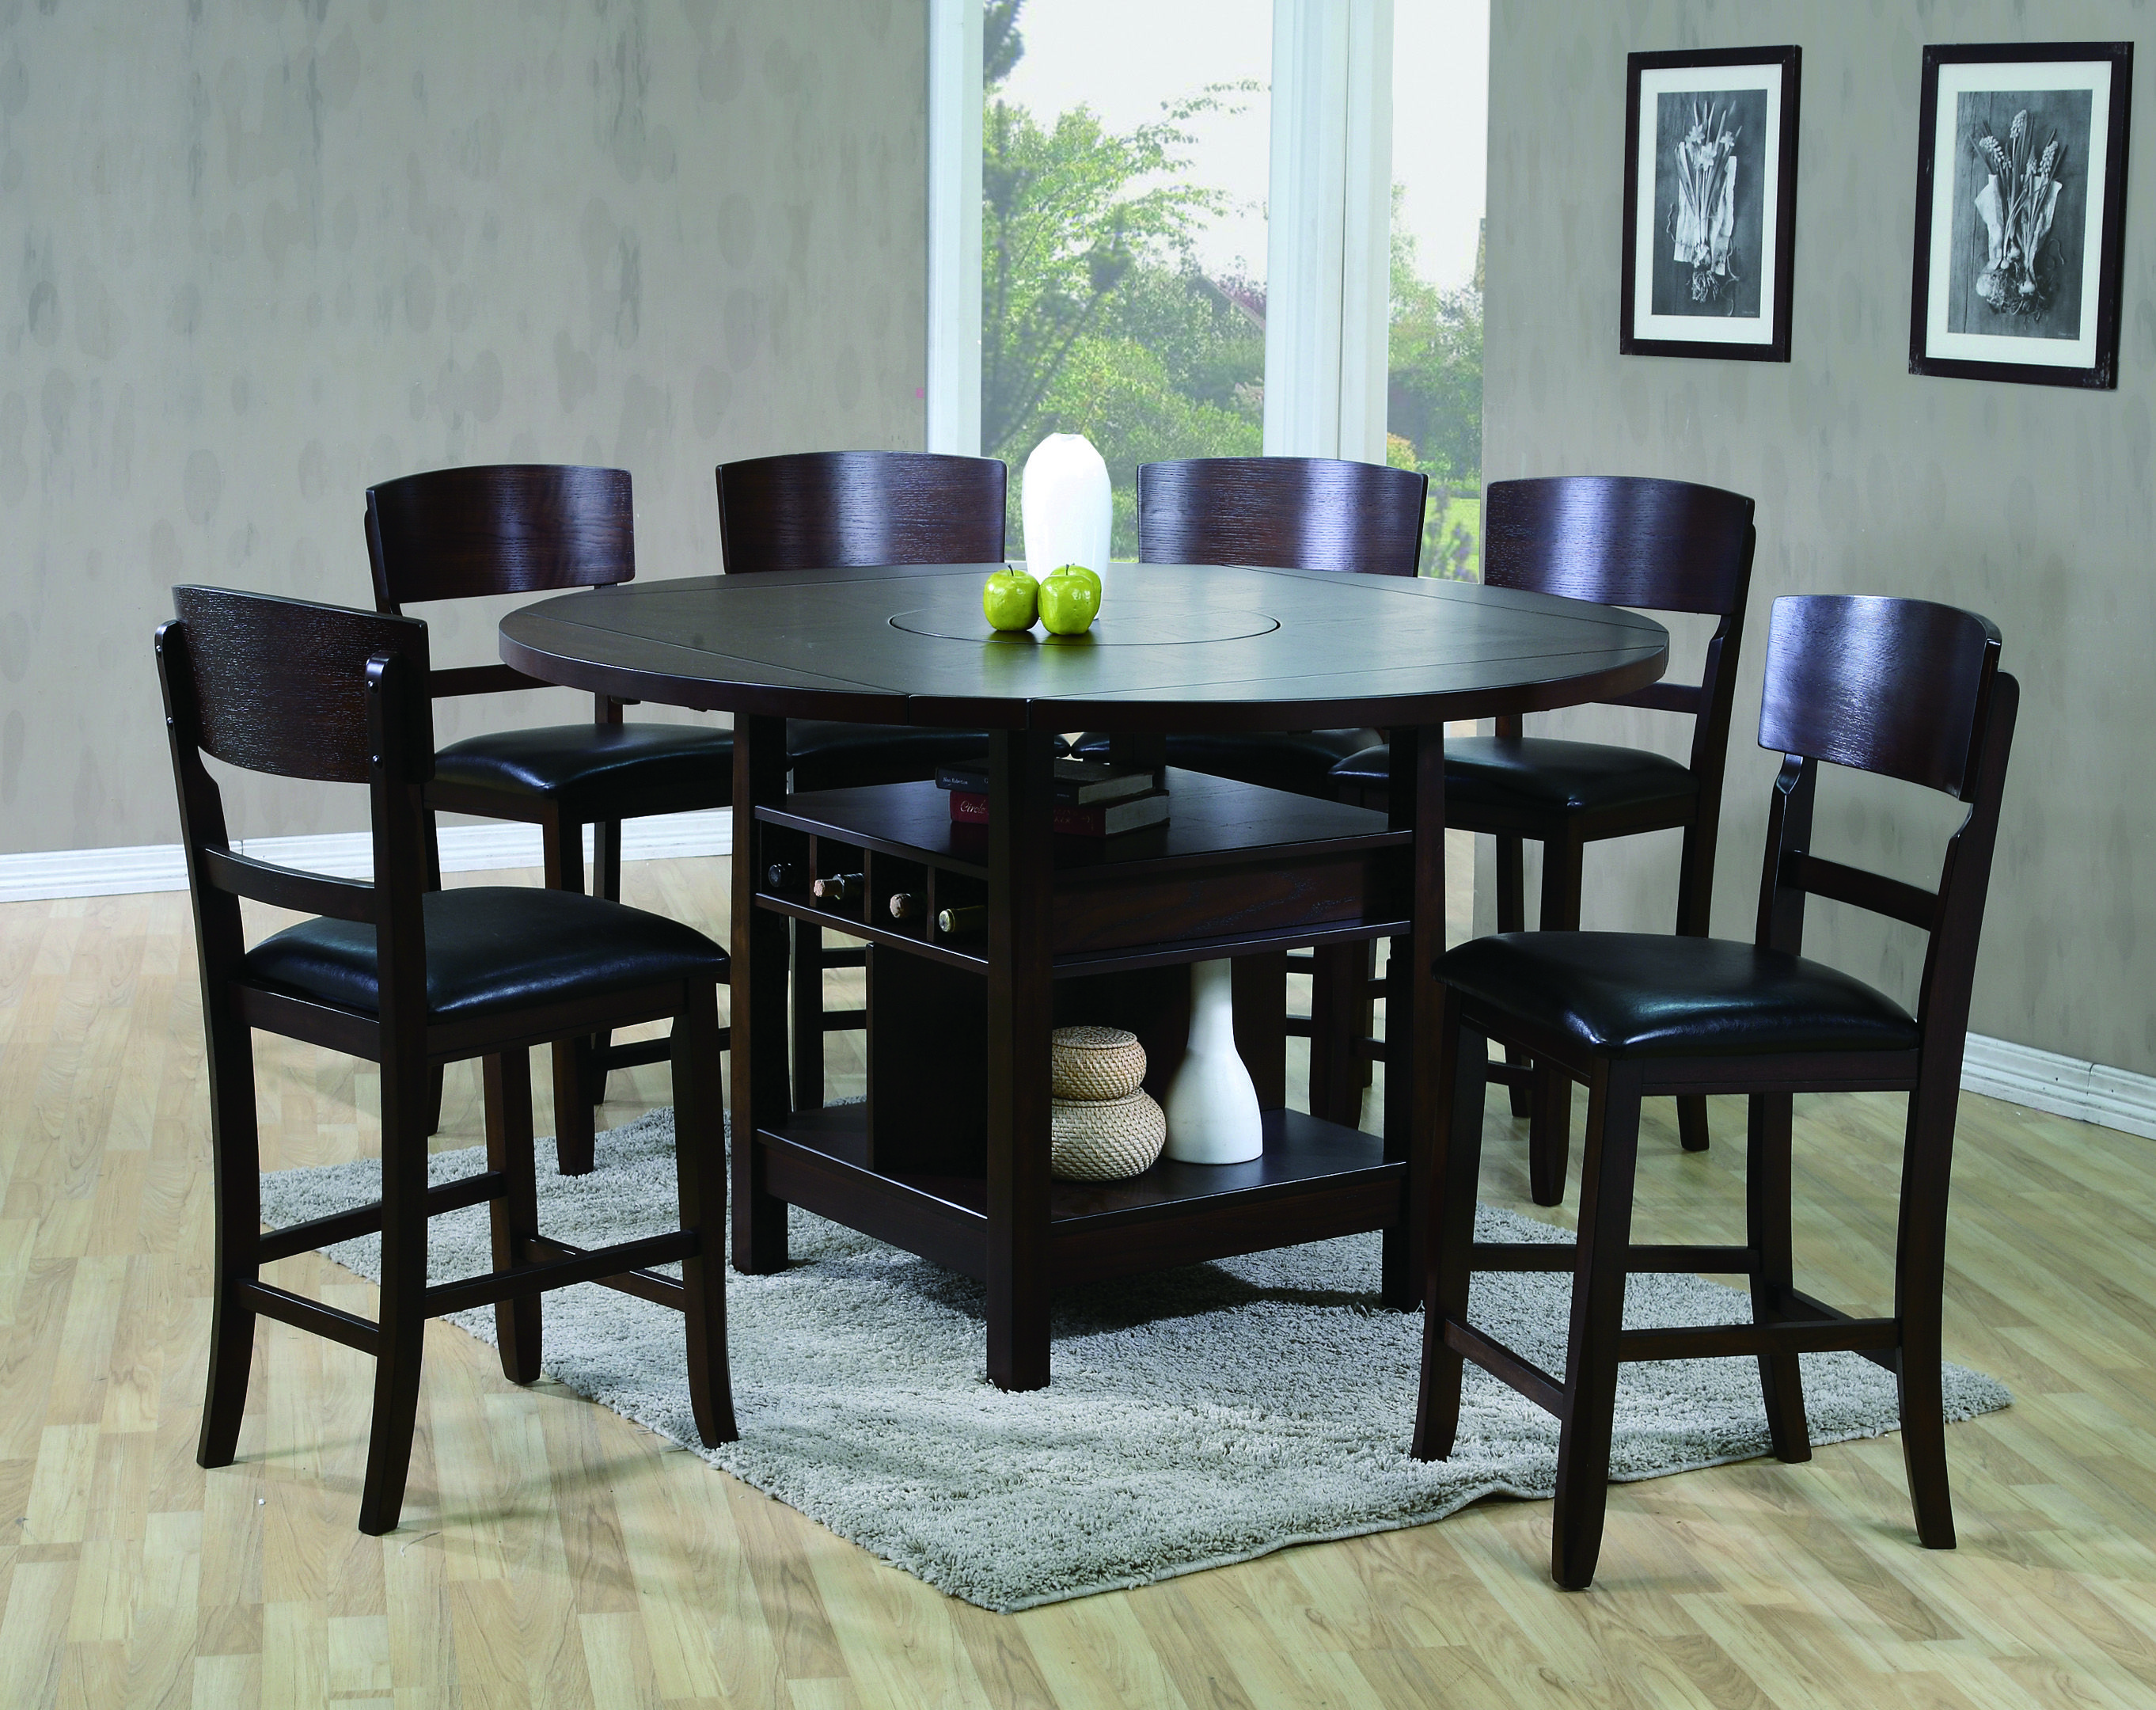 Crown Mark Conner 2849 Counter Height Table And 6 Chairs Is The Amazing Dining Set For